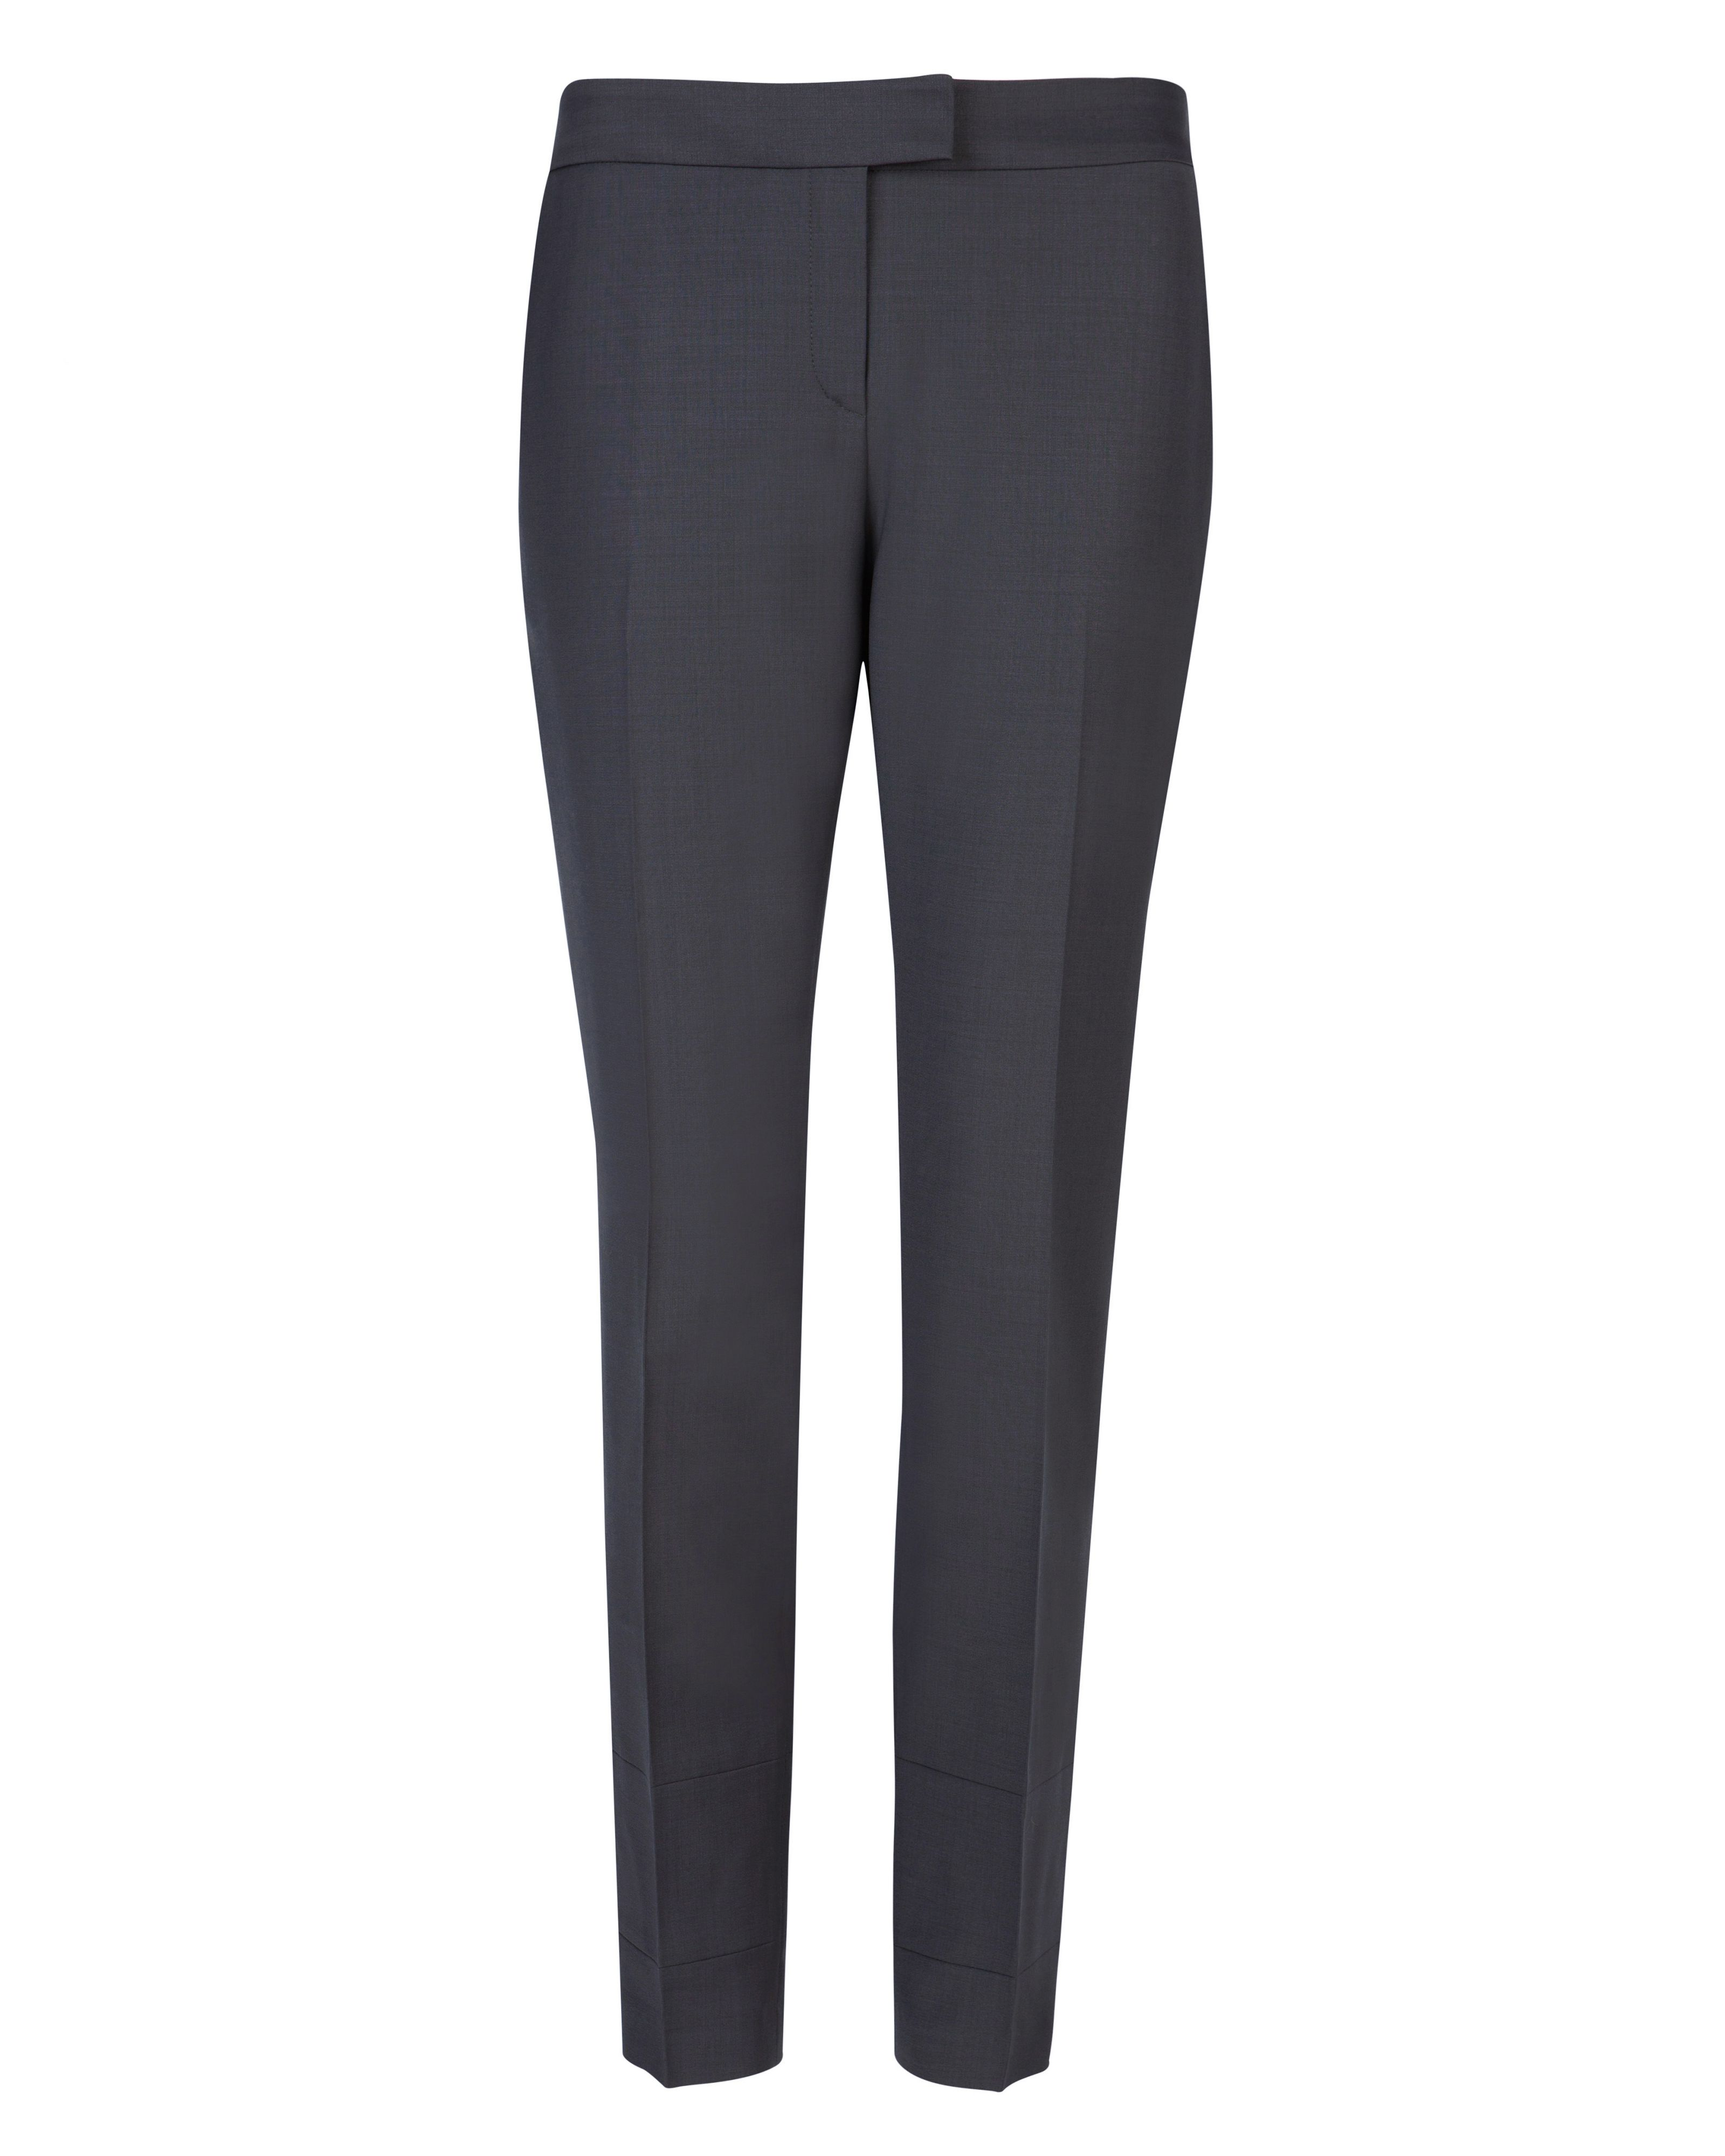 Laelt wool suit trouser